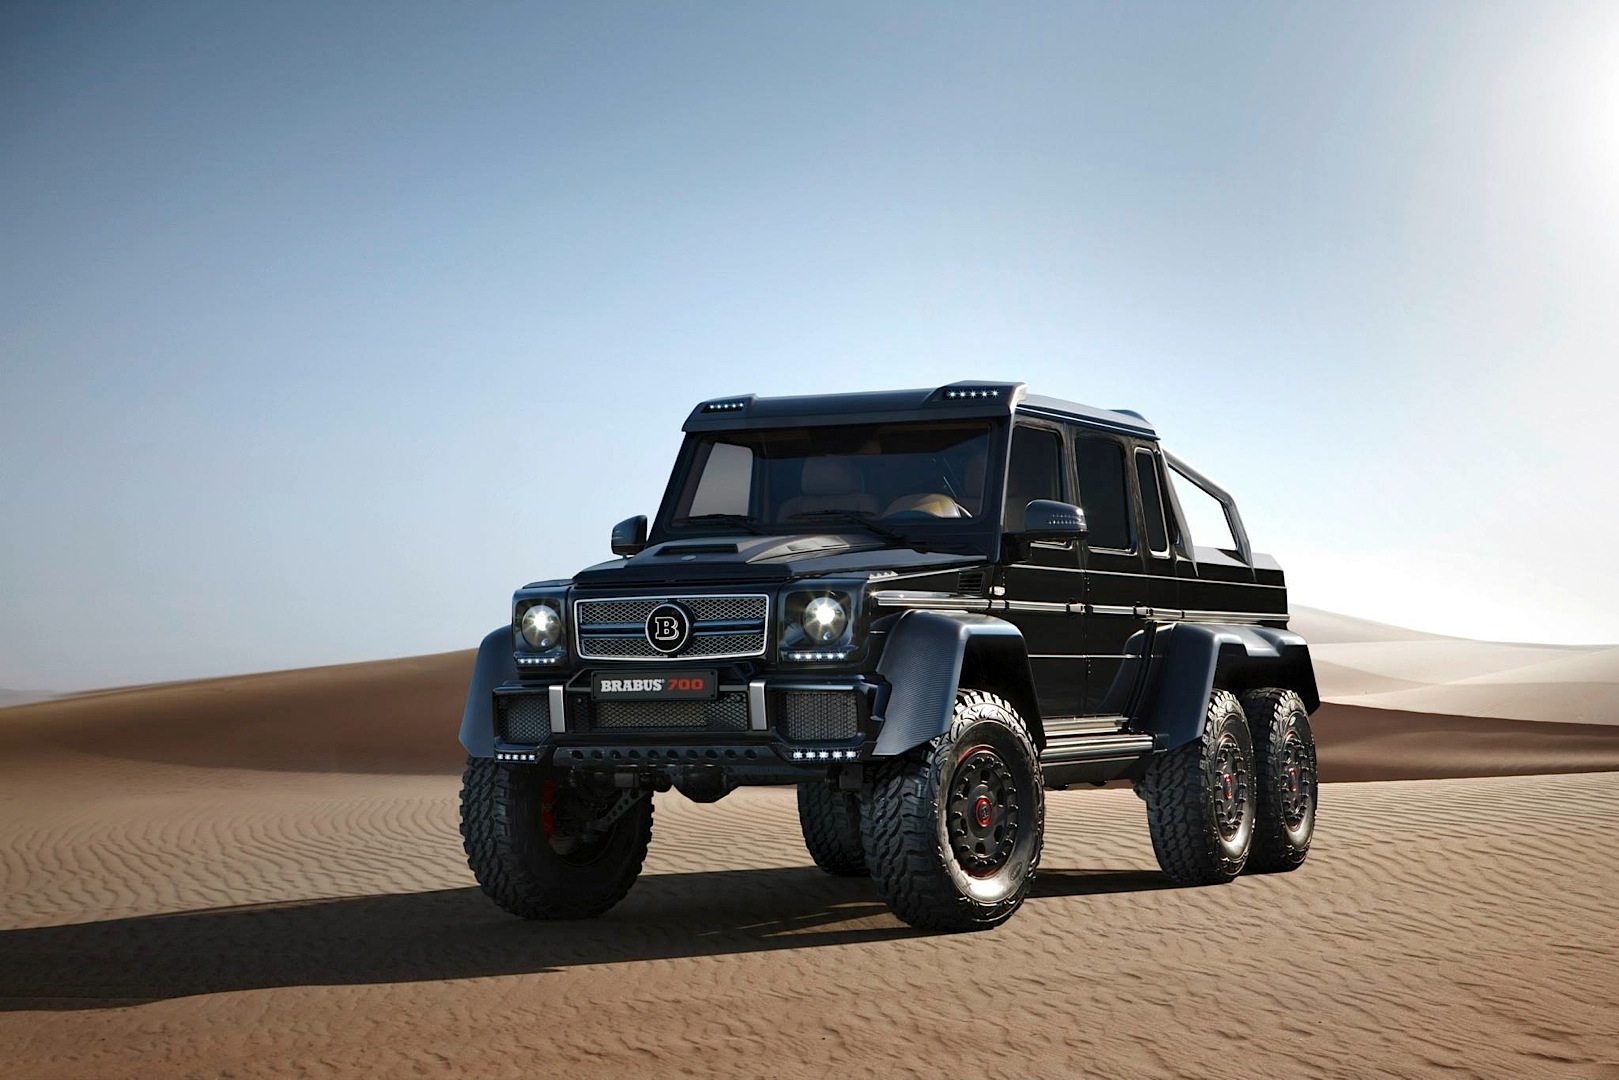 These Brabus 700 6x6 Images Will Make You Wish For a Sandstorm ...